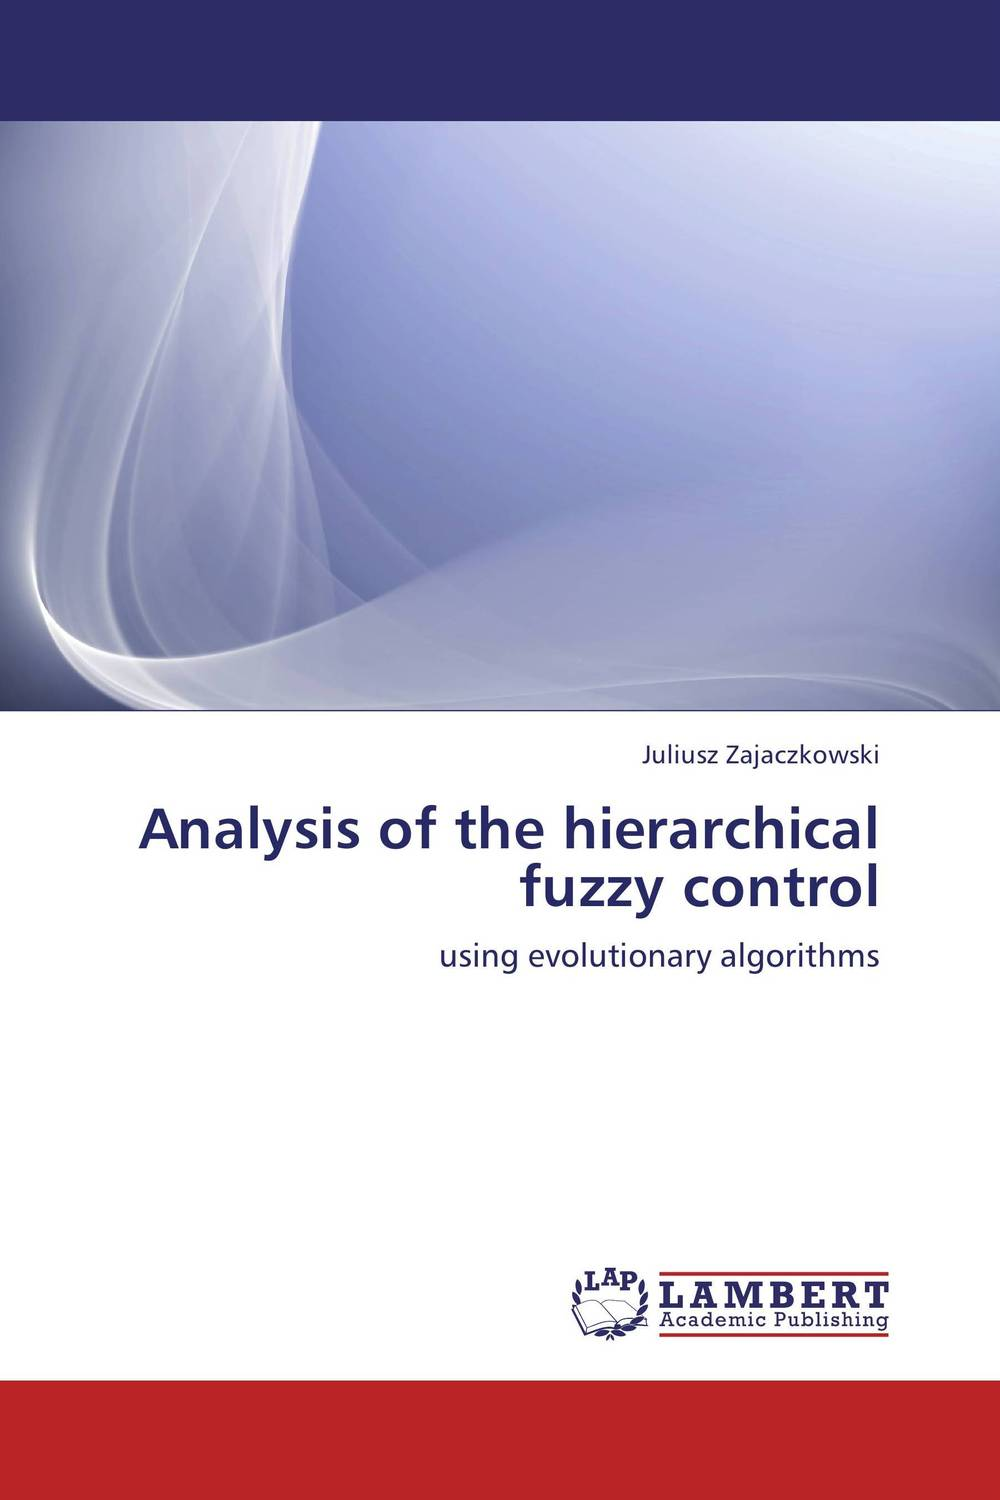 Analysis of the hierarchical fuzzy control fuzzy logic supervisory control of discrete event system